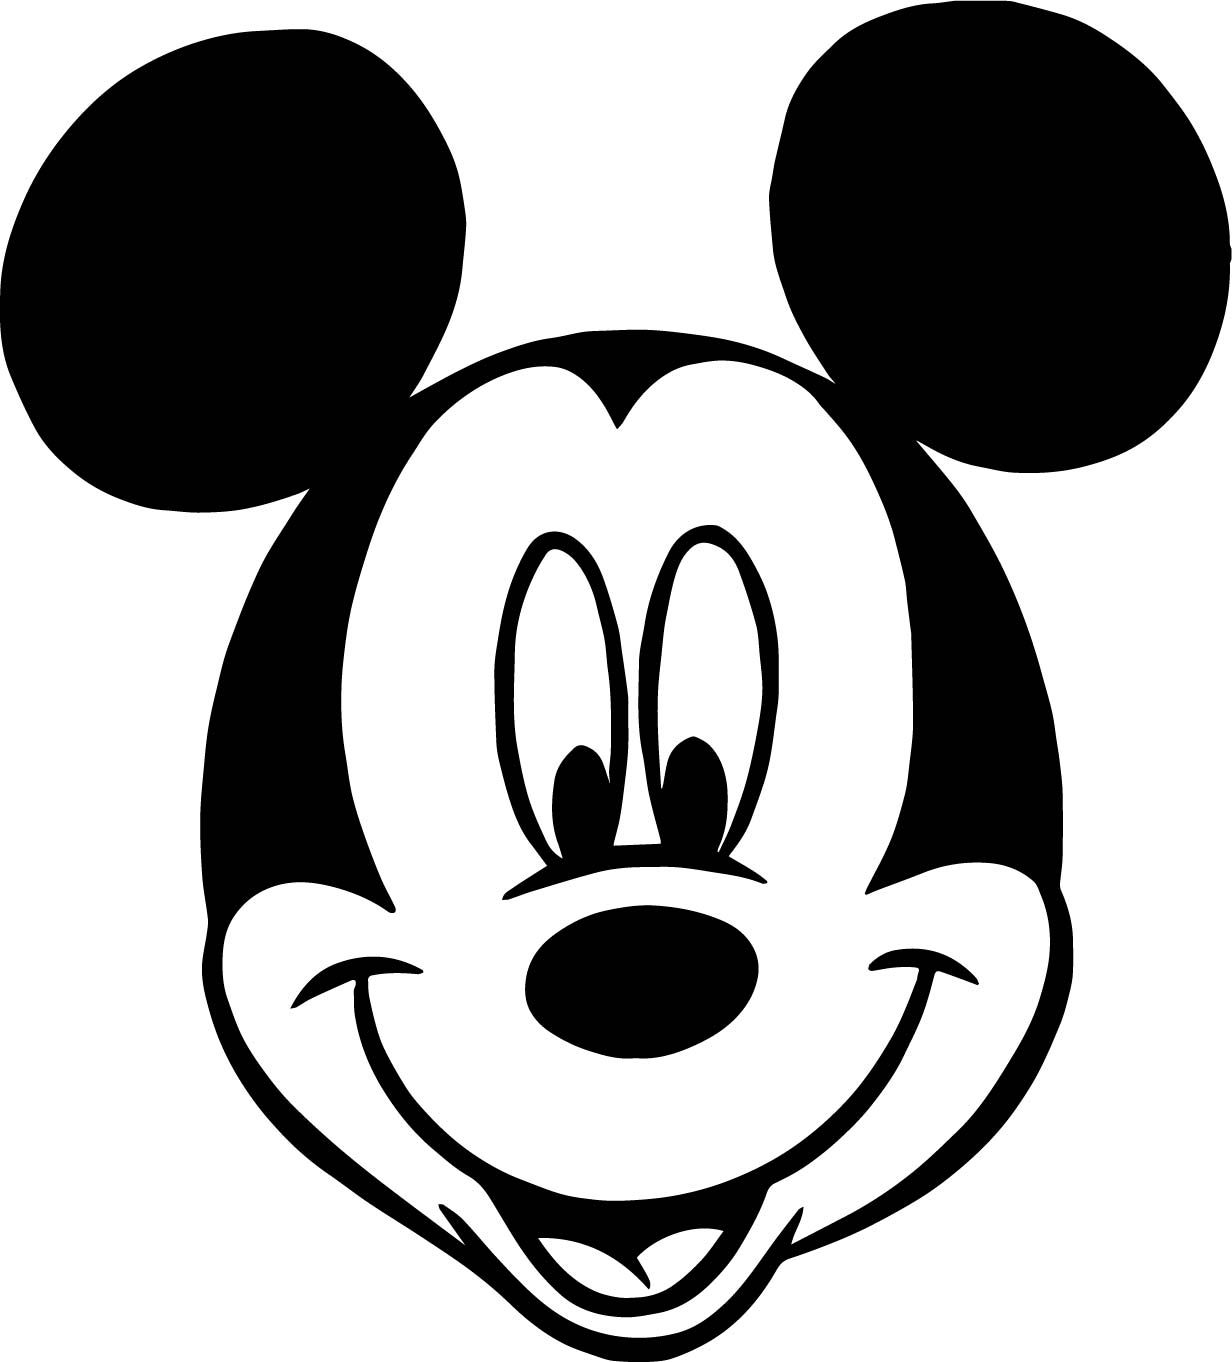 Mickey Mouse Face Cartoon Coloring Page Mickey Mouse Drawings Mickey Mouse Pictures Mickey Mouse Printables